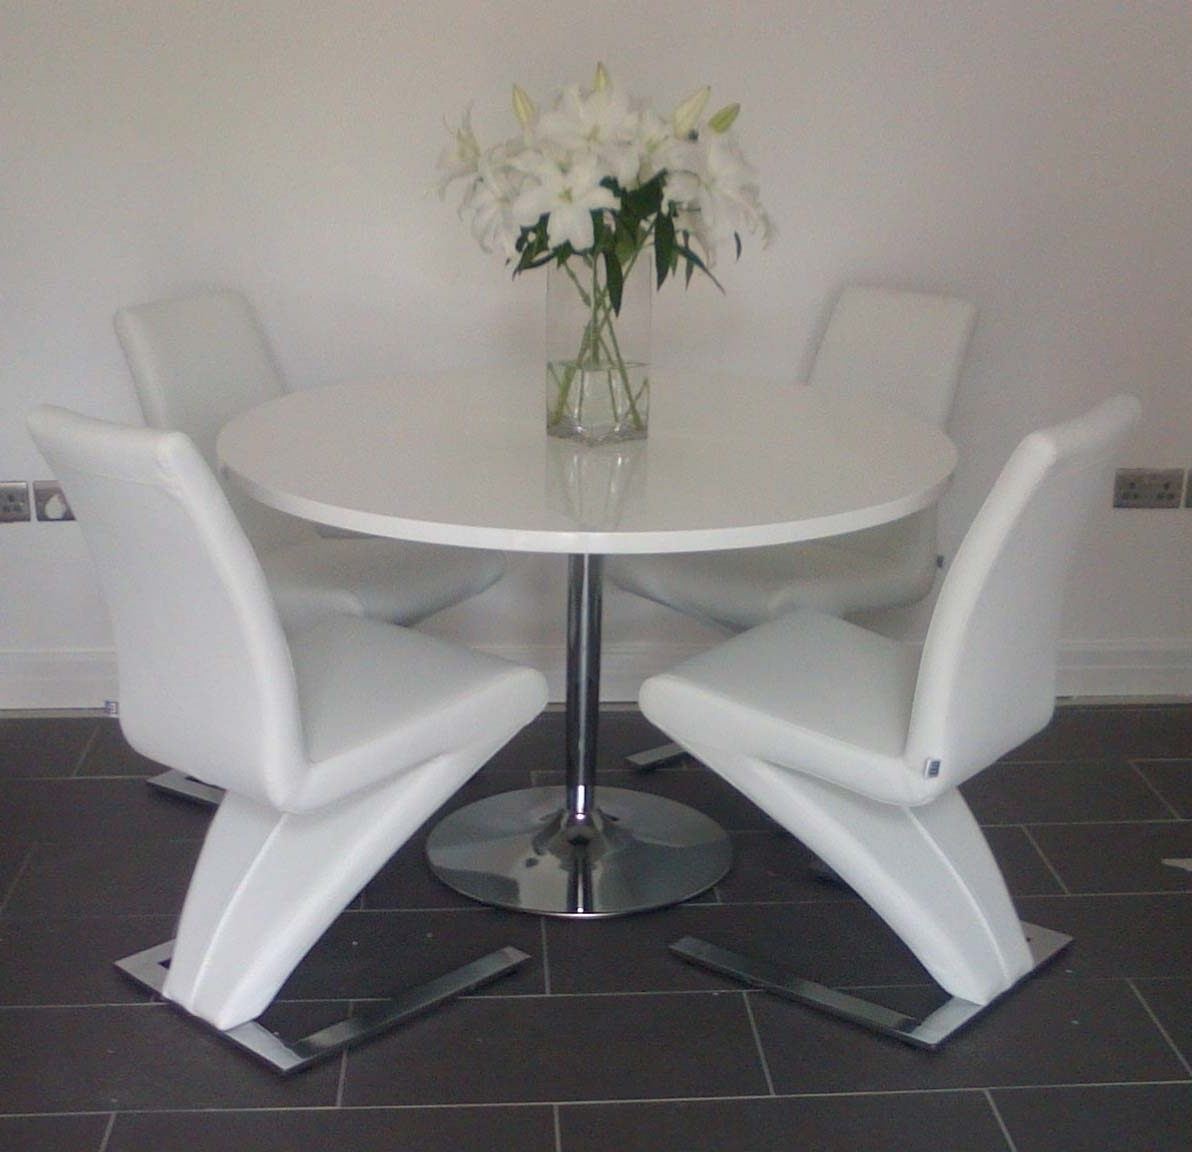 High Gloss Round Dining Tables Intended For Recent Becky Round White High Gloss Dining Table 120Cm Discontinued For (View 6 of 25)